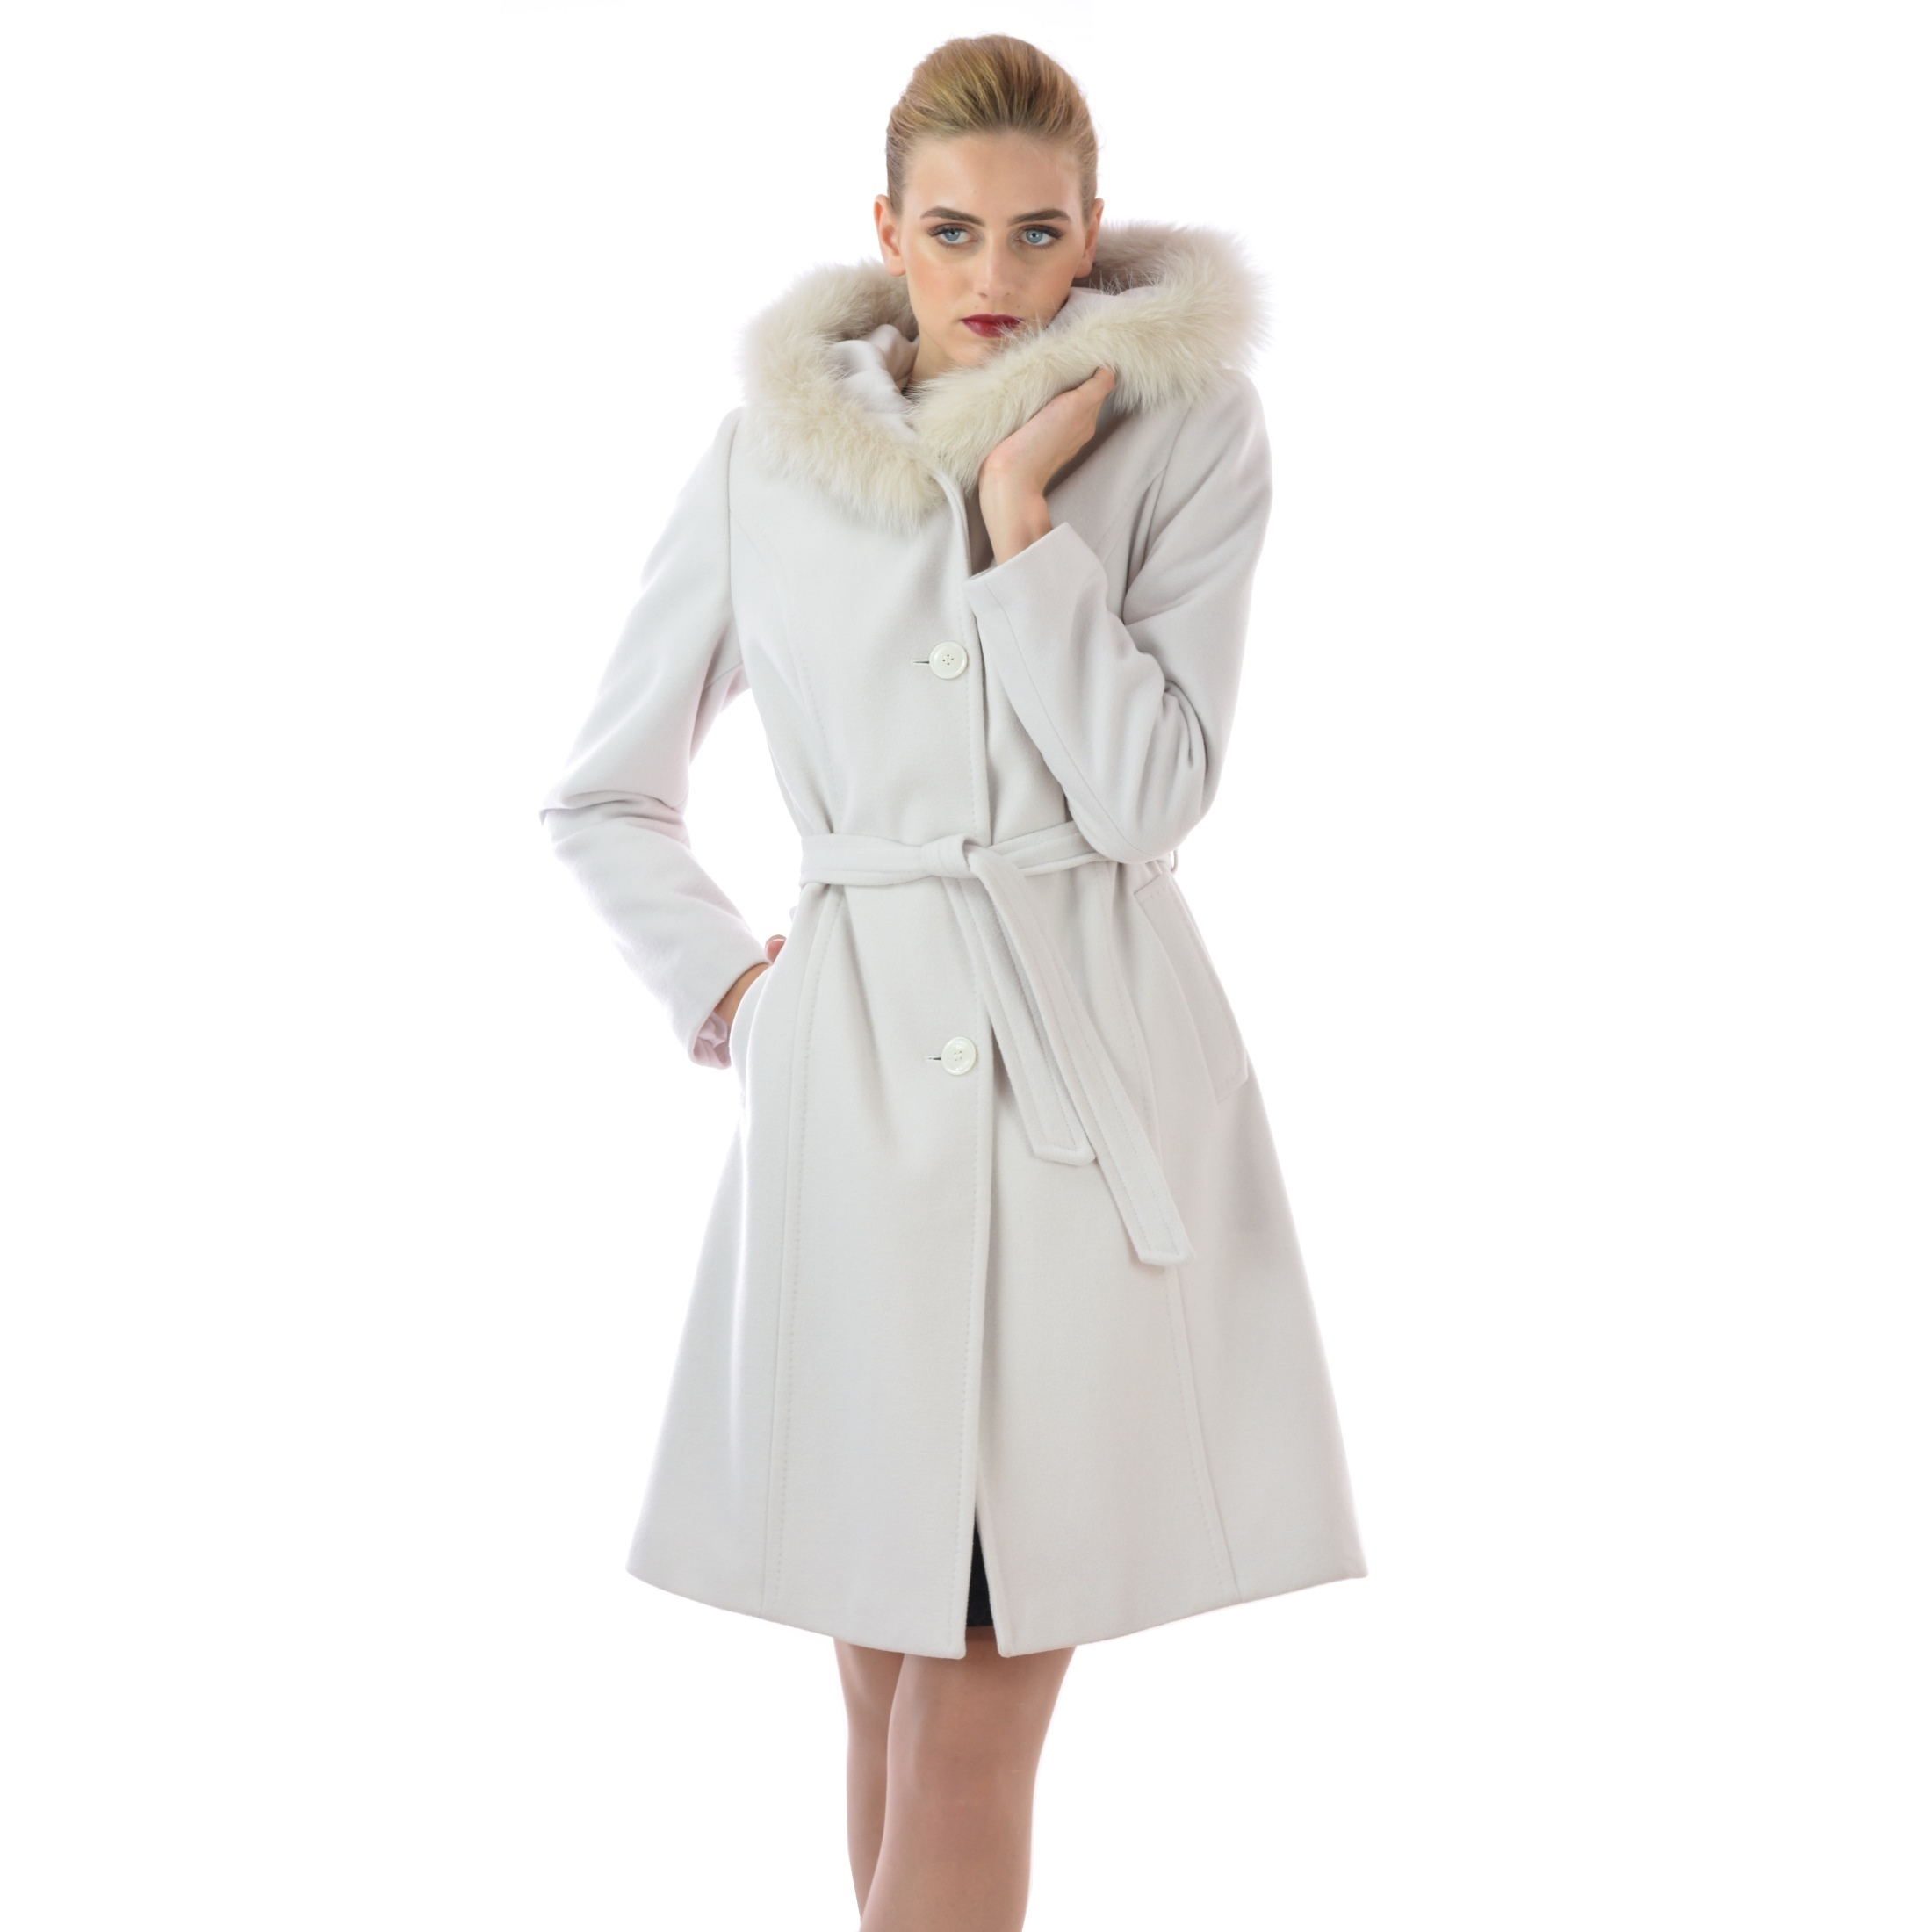 women's coat white wool, bijeli kaput lady m